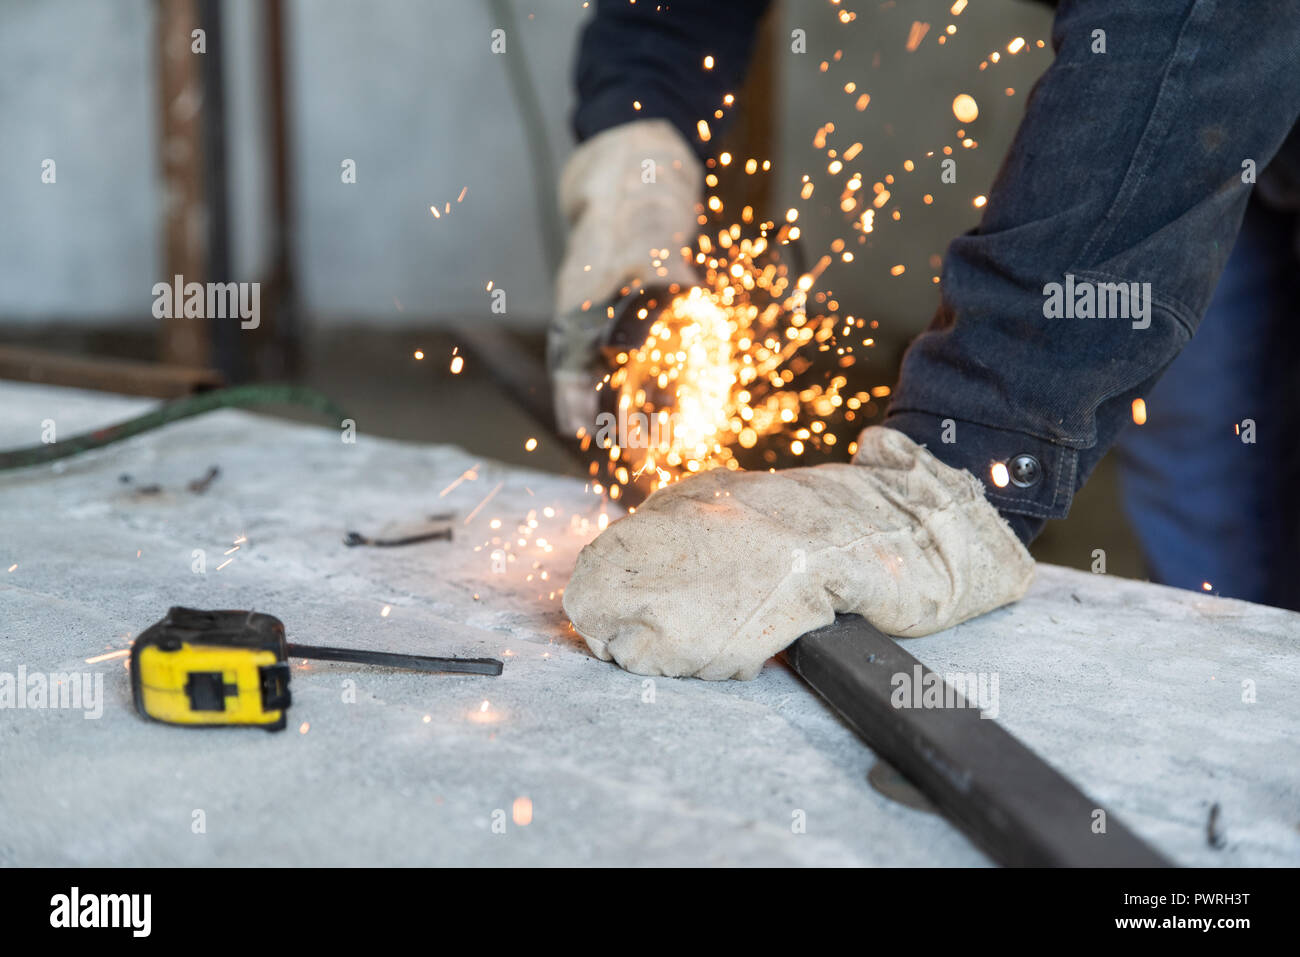 Process of cutting metal profile with electric angle grinder. Preparation of parts for welding of metal construction. People at work, profession - Stock Image